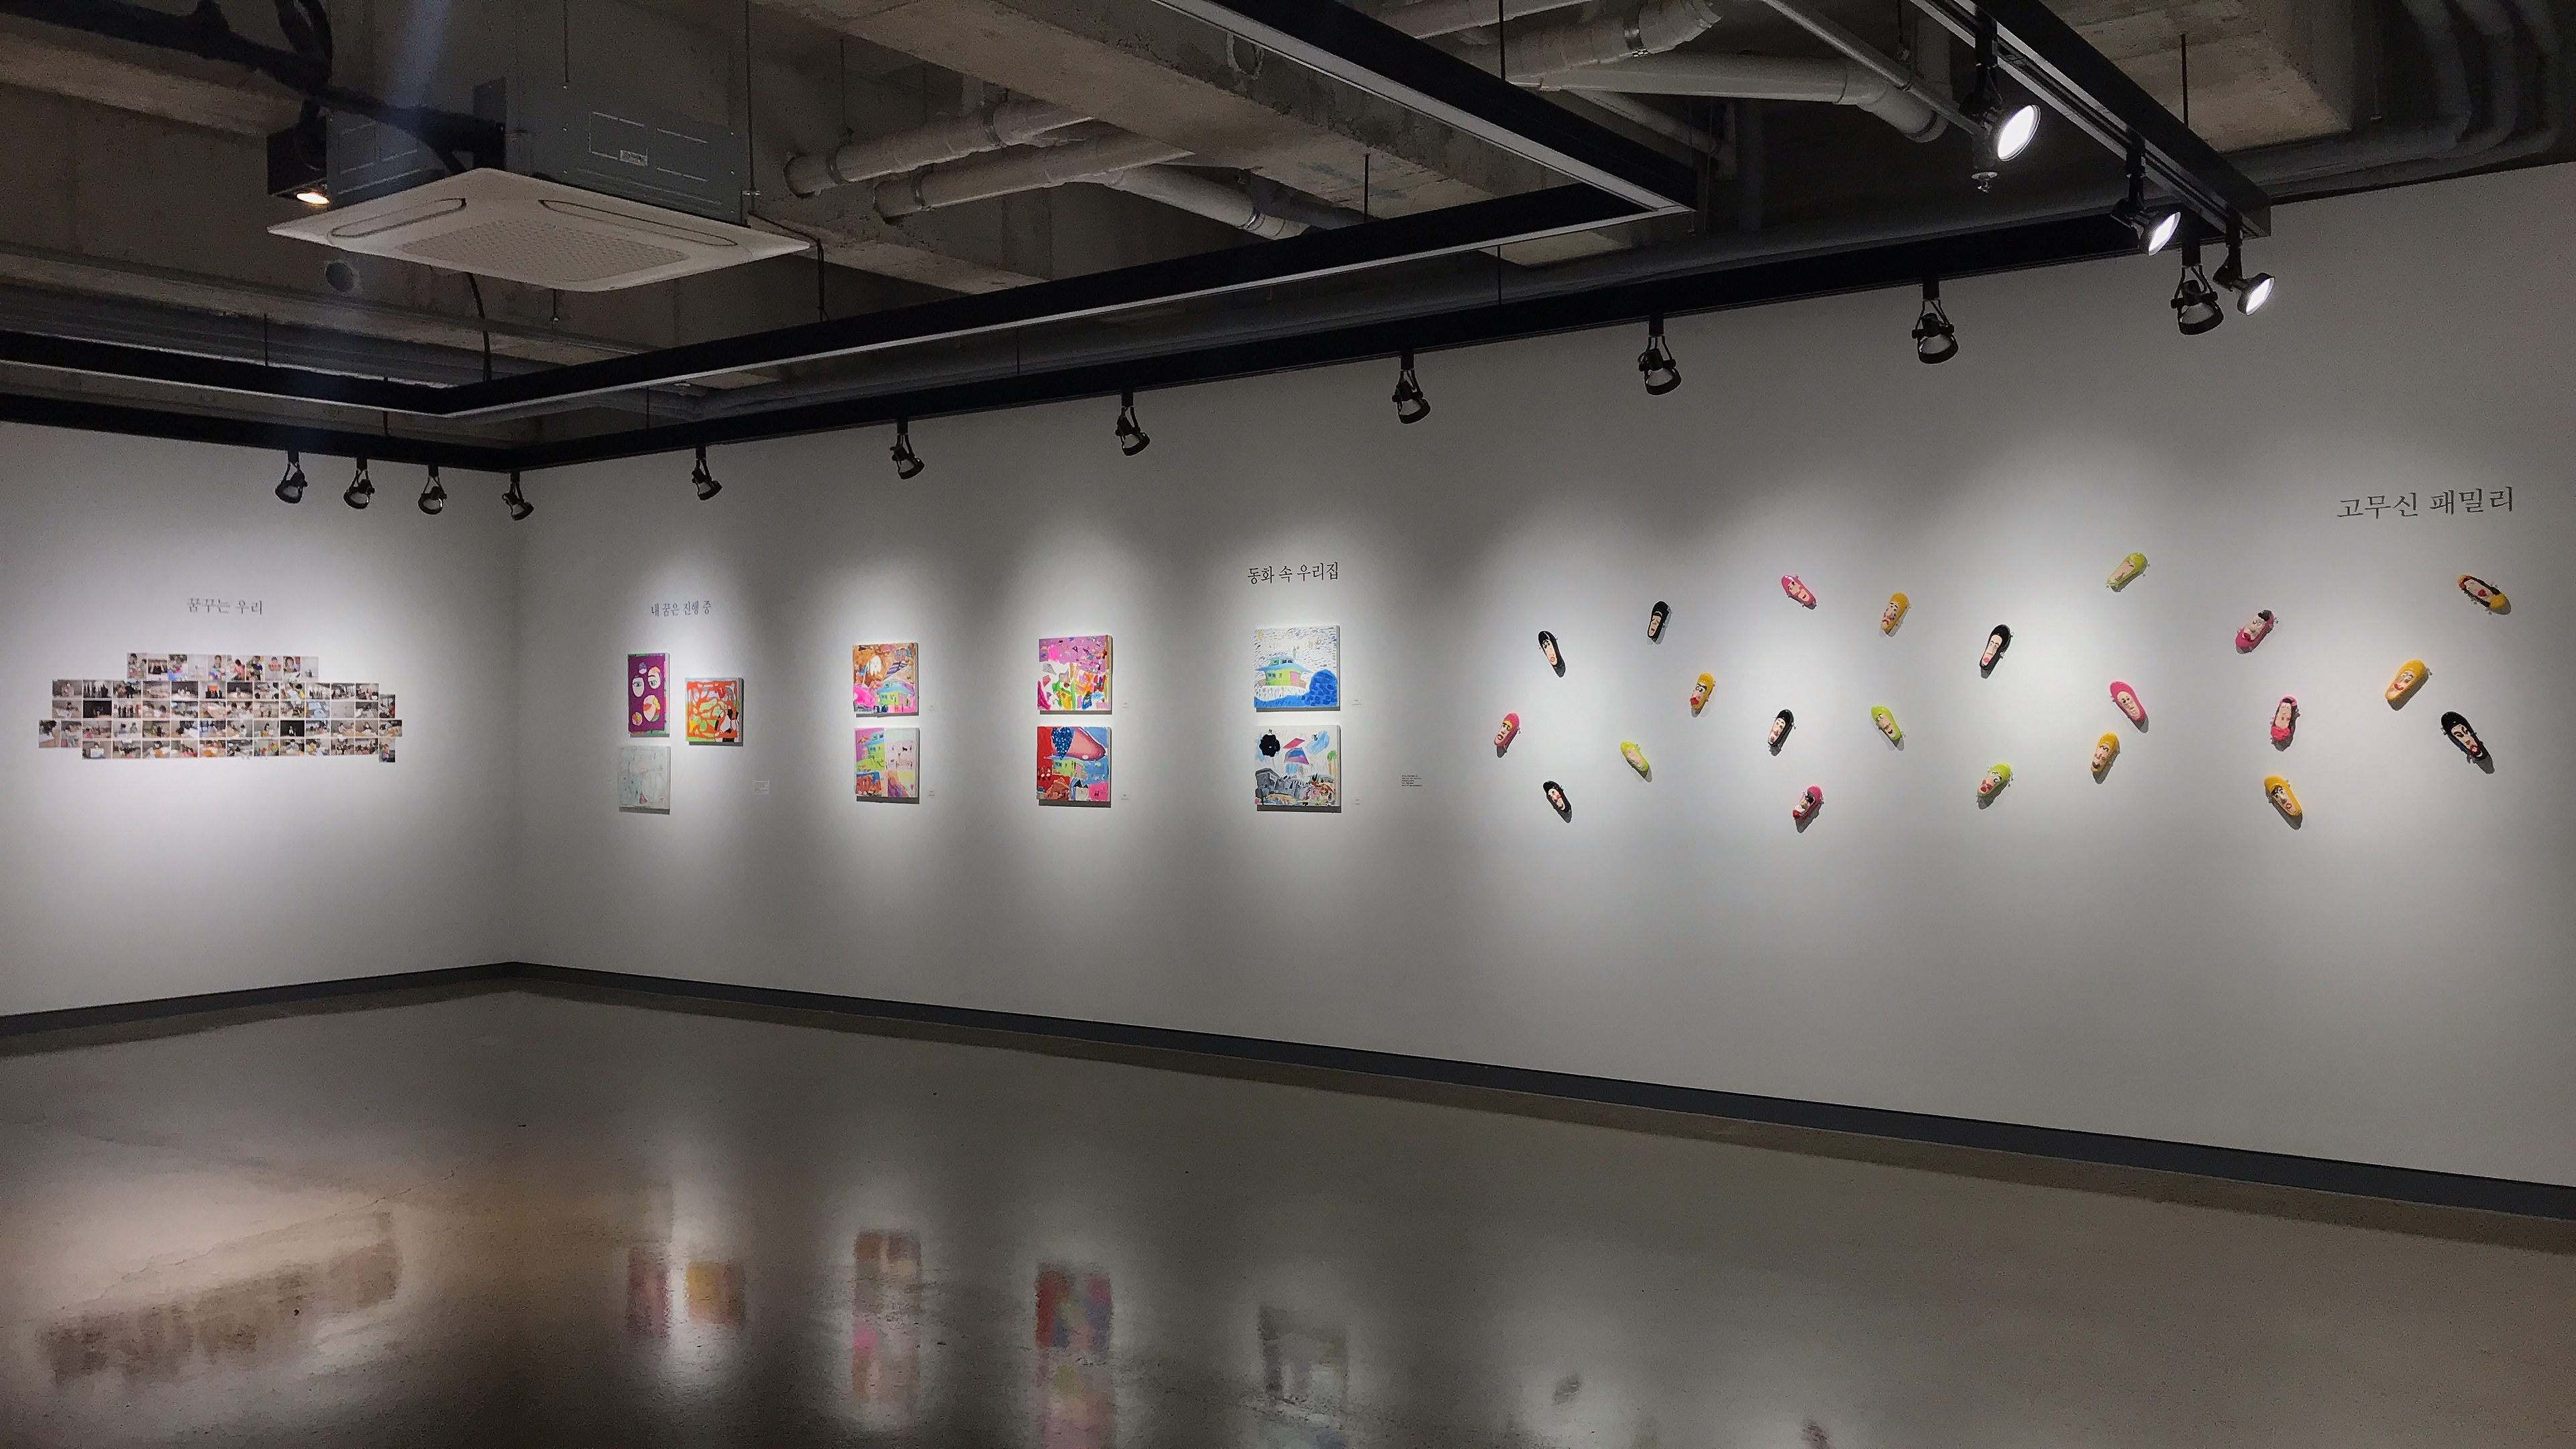 http://www.deyoungmuseum.co.kr/bs/se2/imgup/16063538264.jpg